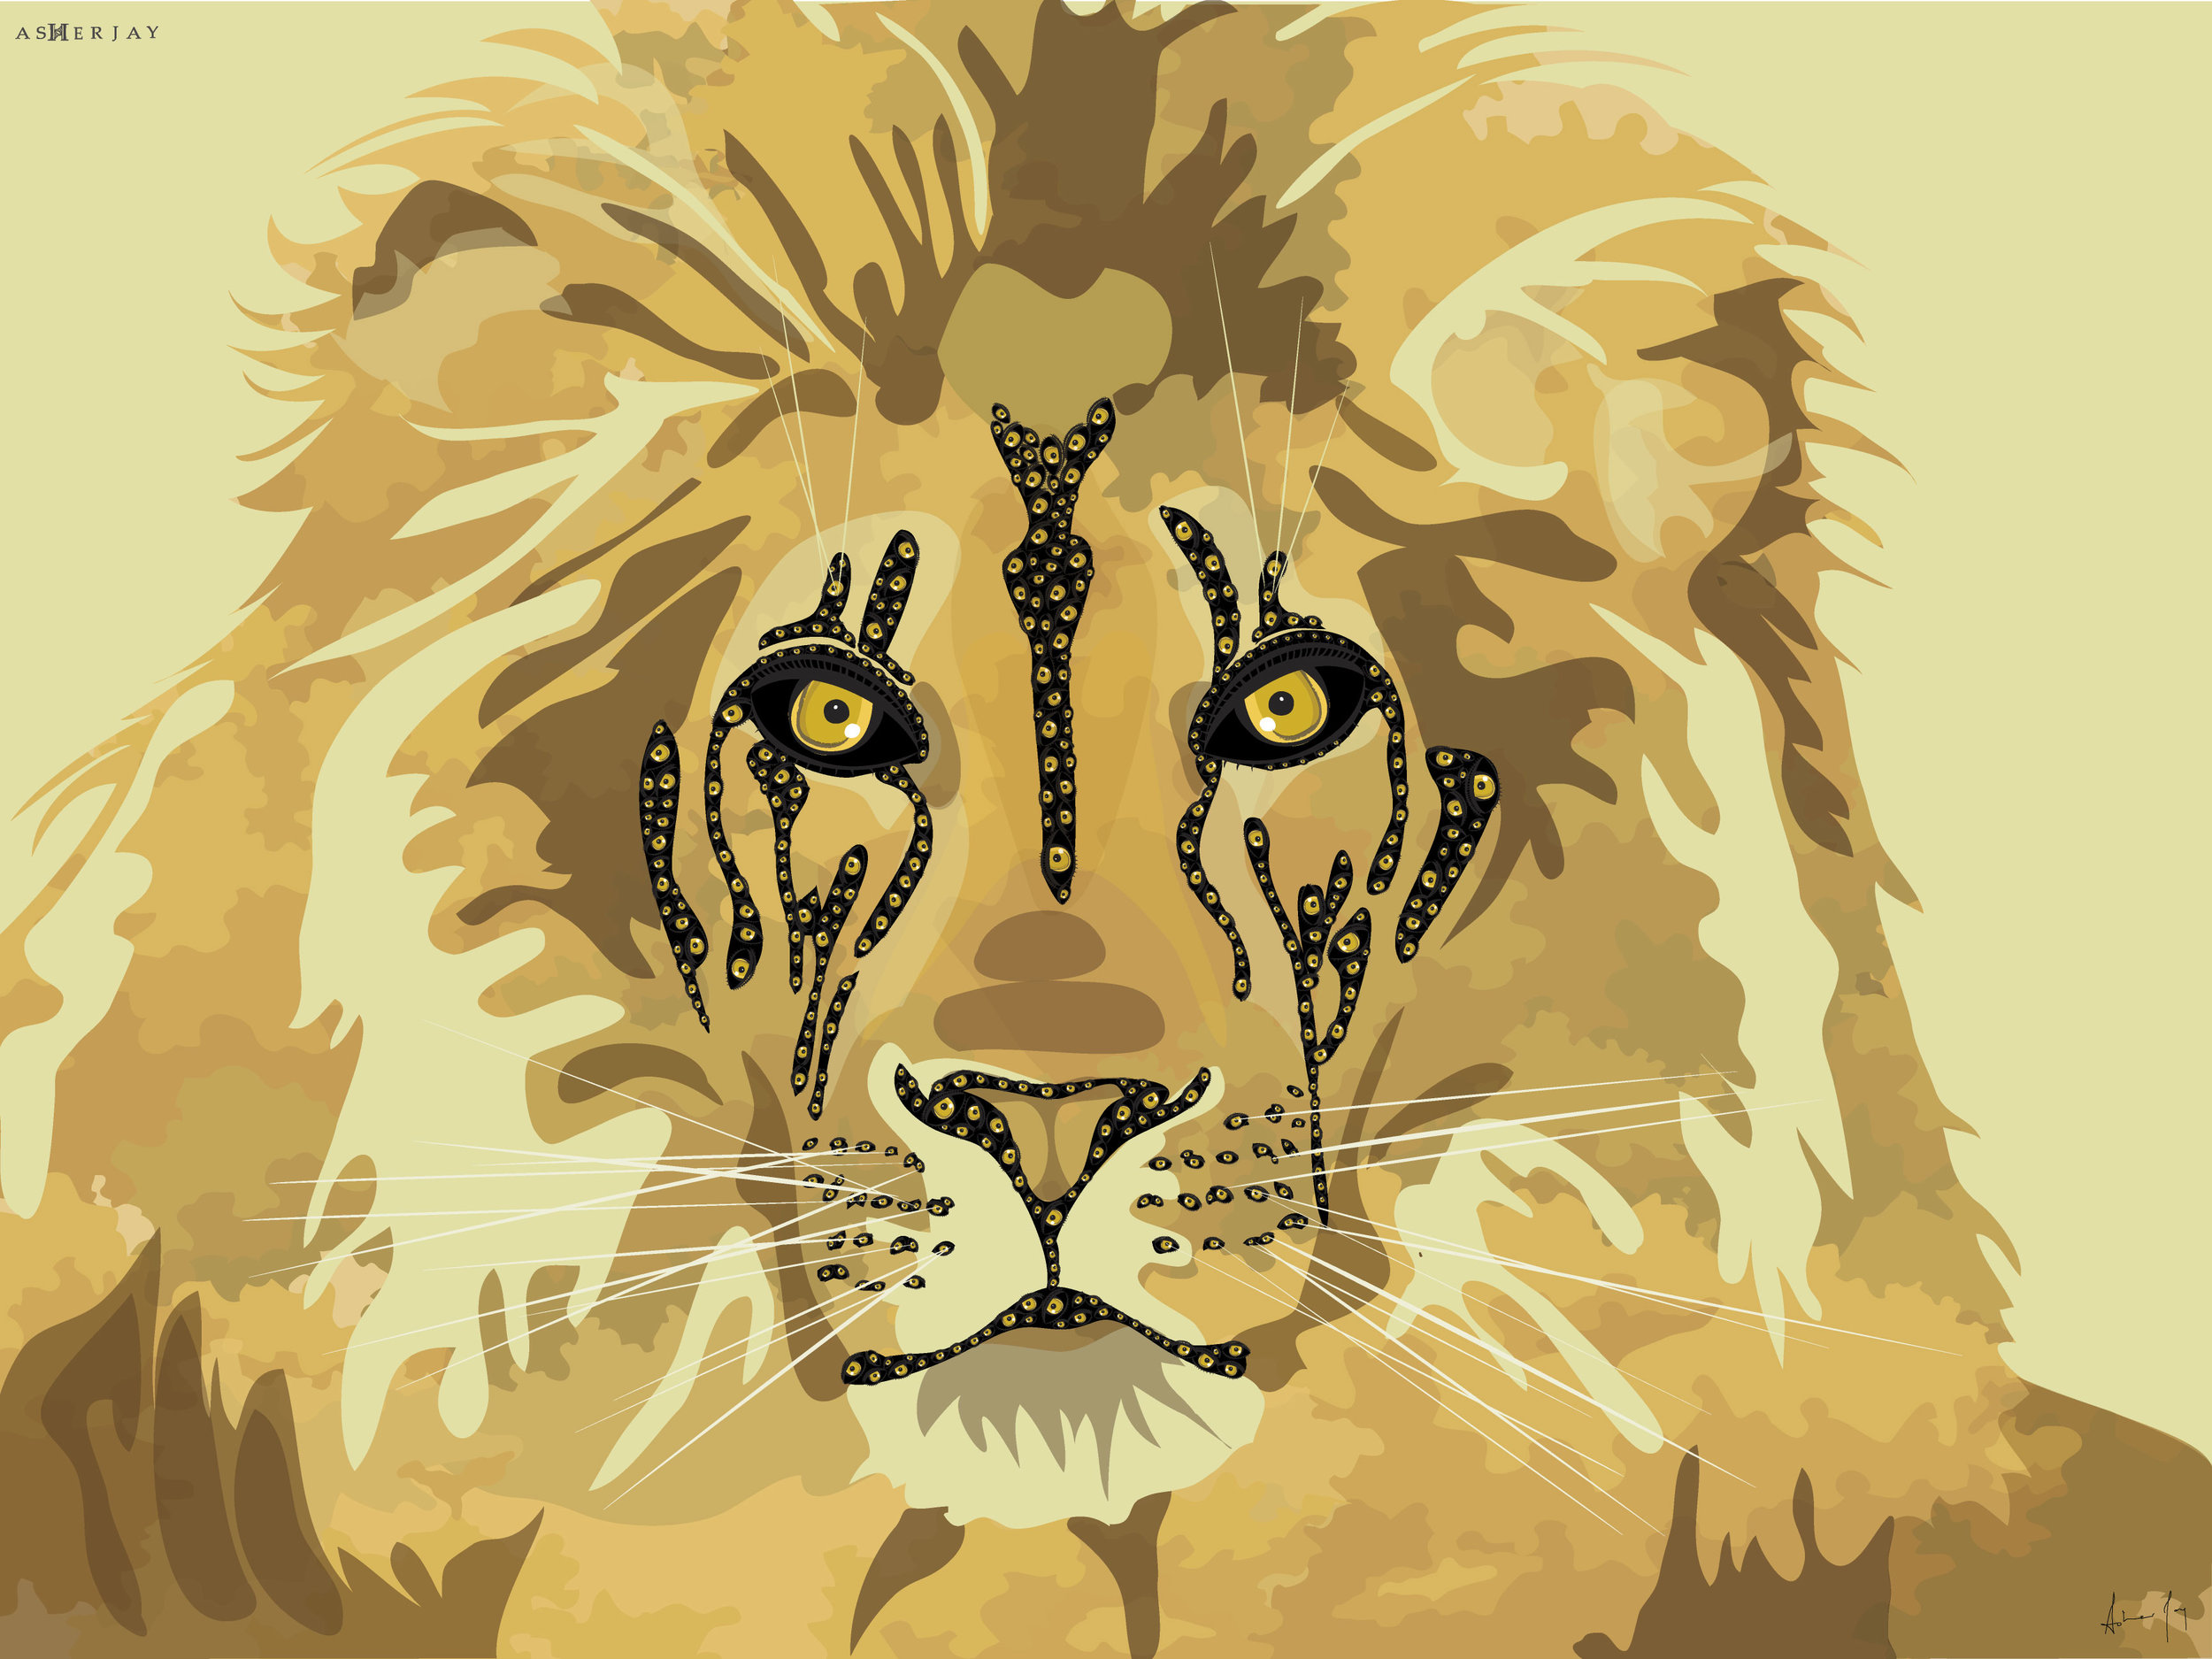 Big Cats Initiative, Eye To Eye with Lion, By Asher Jay